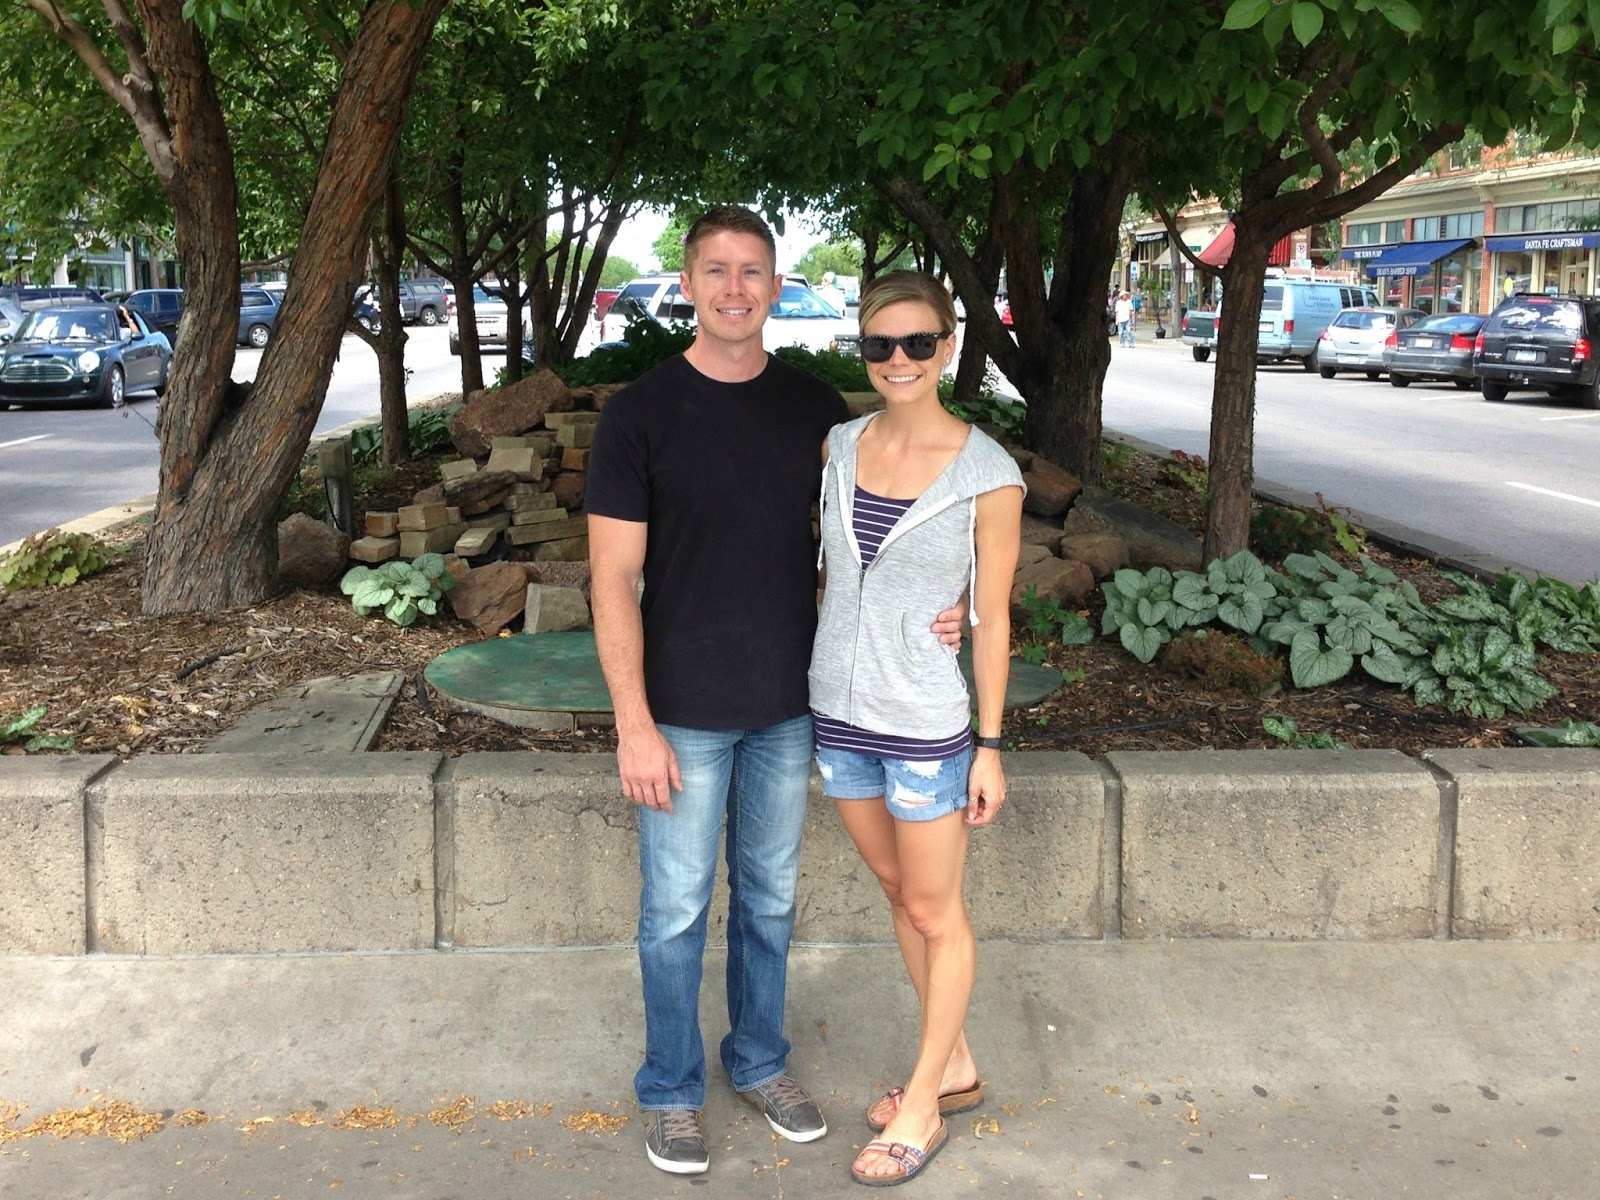 Wyoming Road Trip, Fort Collins Colorado, Old Town Fort Collins